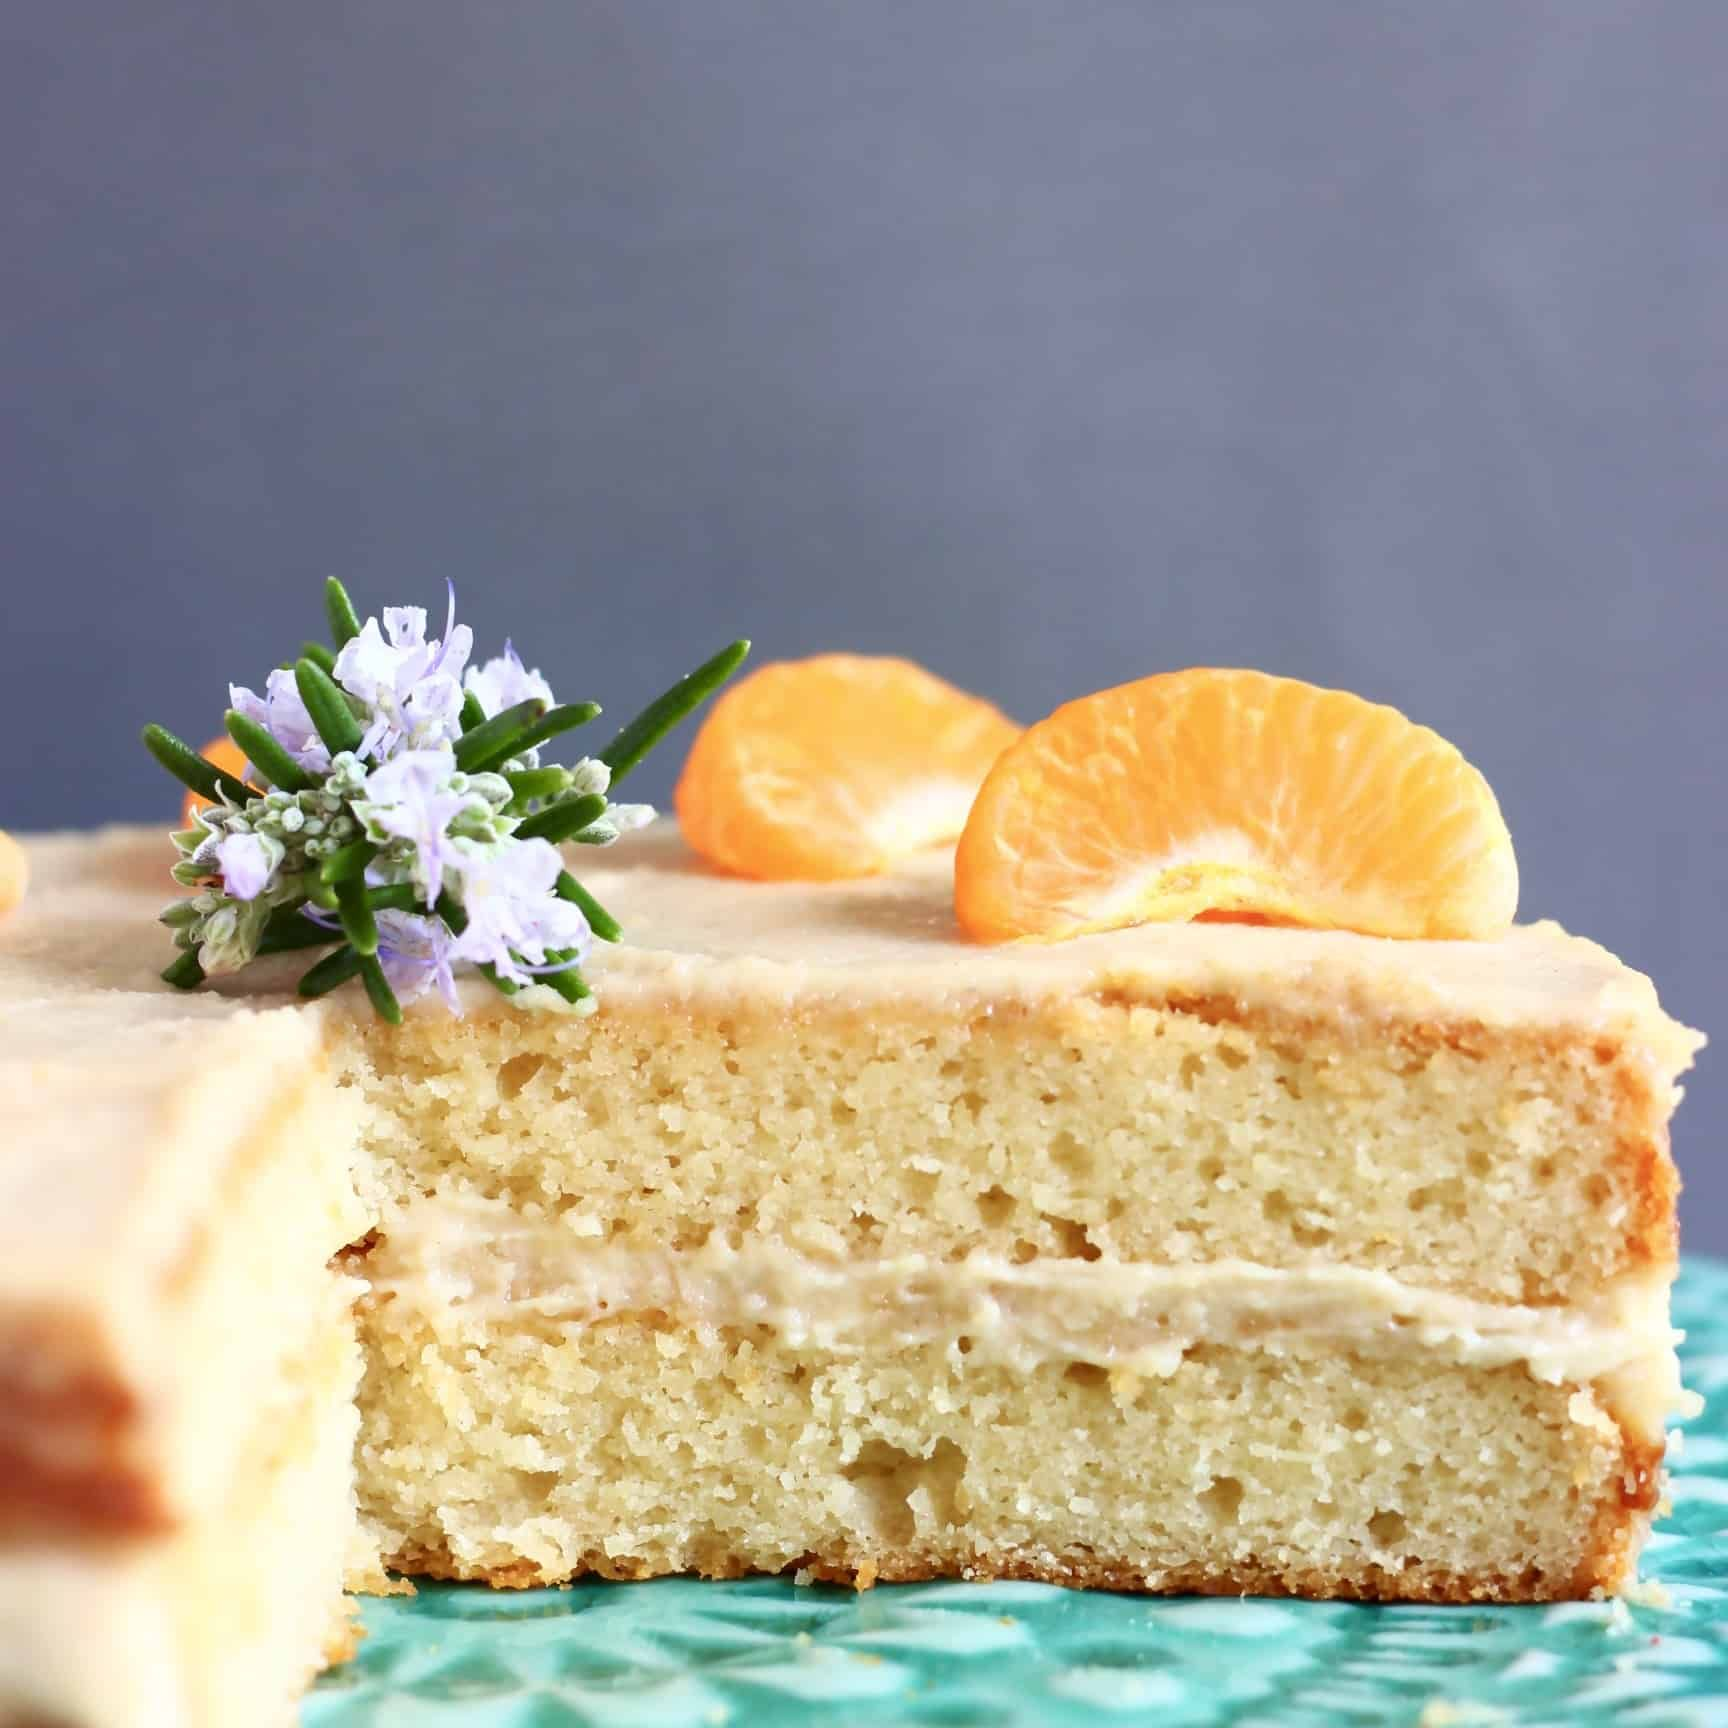 This Gluten Free Vegan Orange Cake Is Moist And Fluffy Fresh And Citrusy And Filled With A Rich Bu Vegan Gluten Free Cake Gluten Free Vanilla Cake Orange Cake